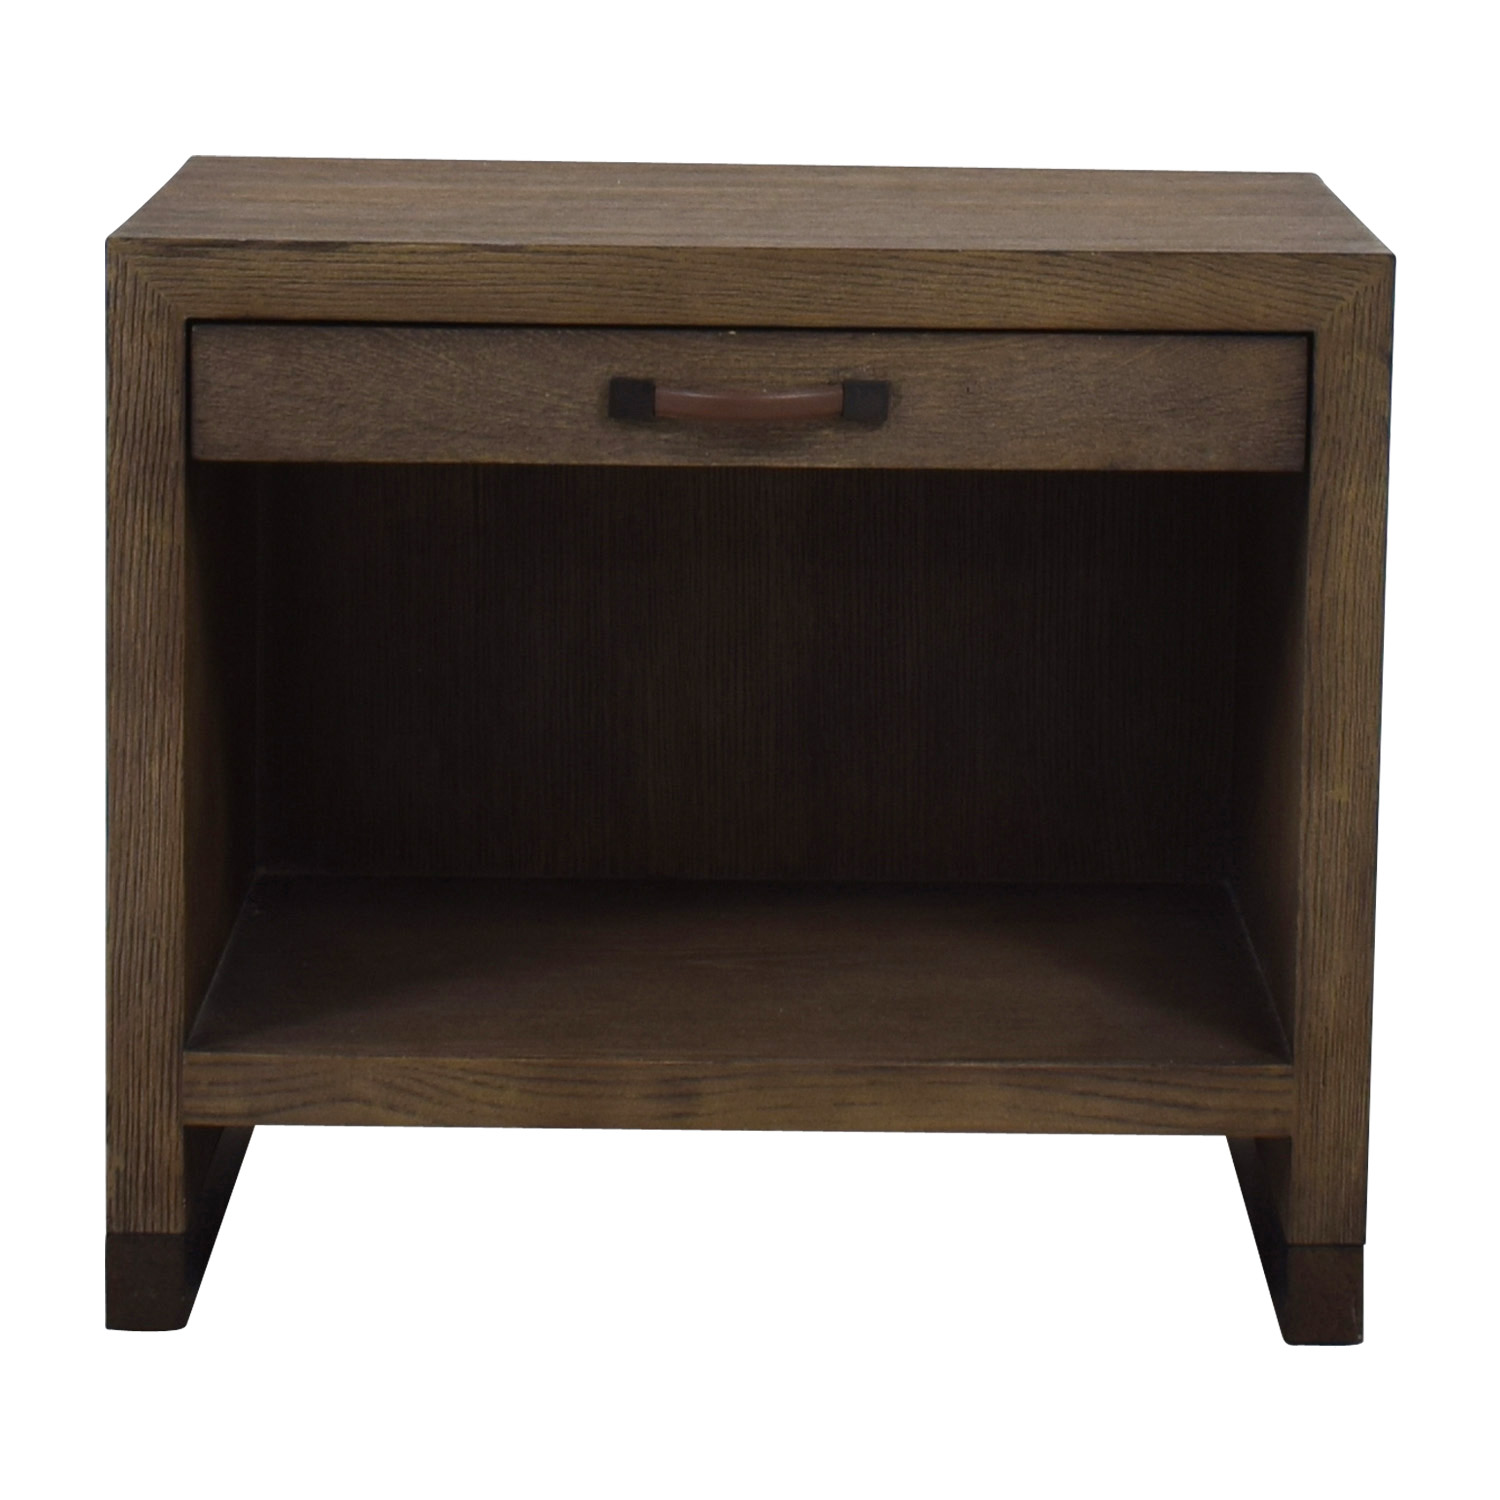 Lillian August Lillian August Conner Grey Wood Nightstand nyc